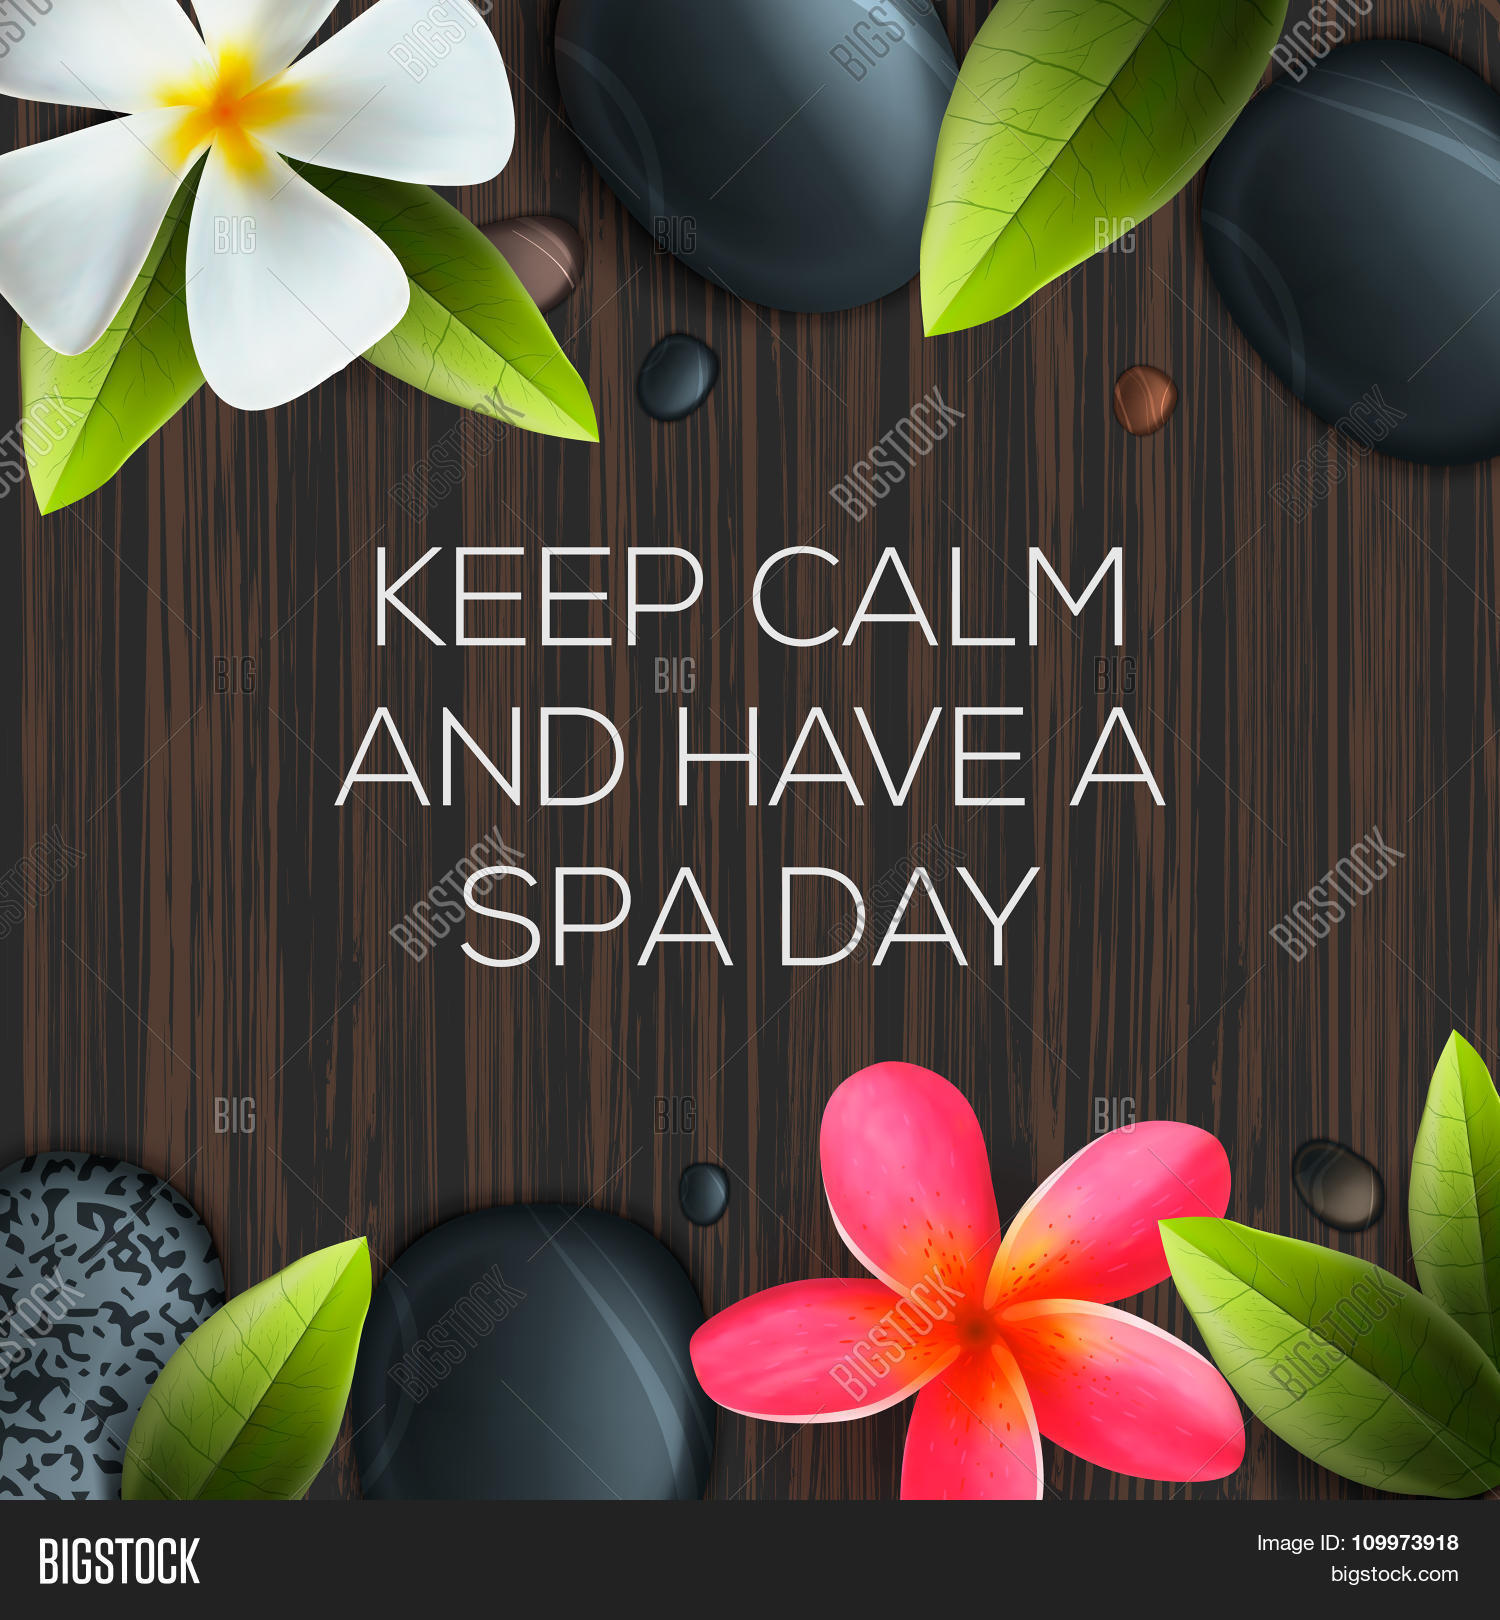 Keep calm have spa day vector photo bigstock for 3 day spa